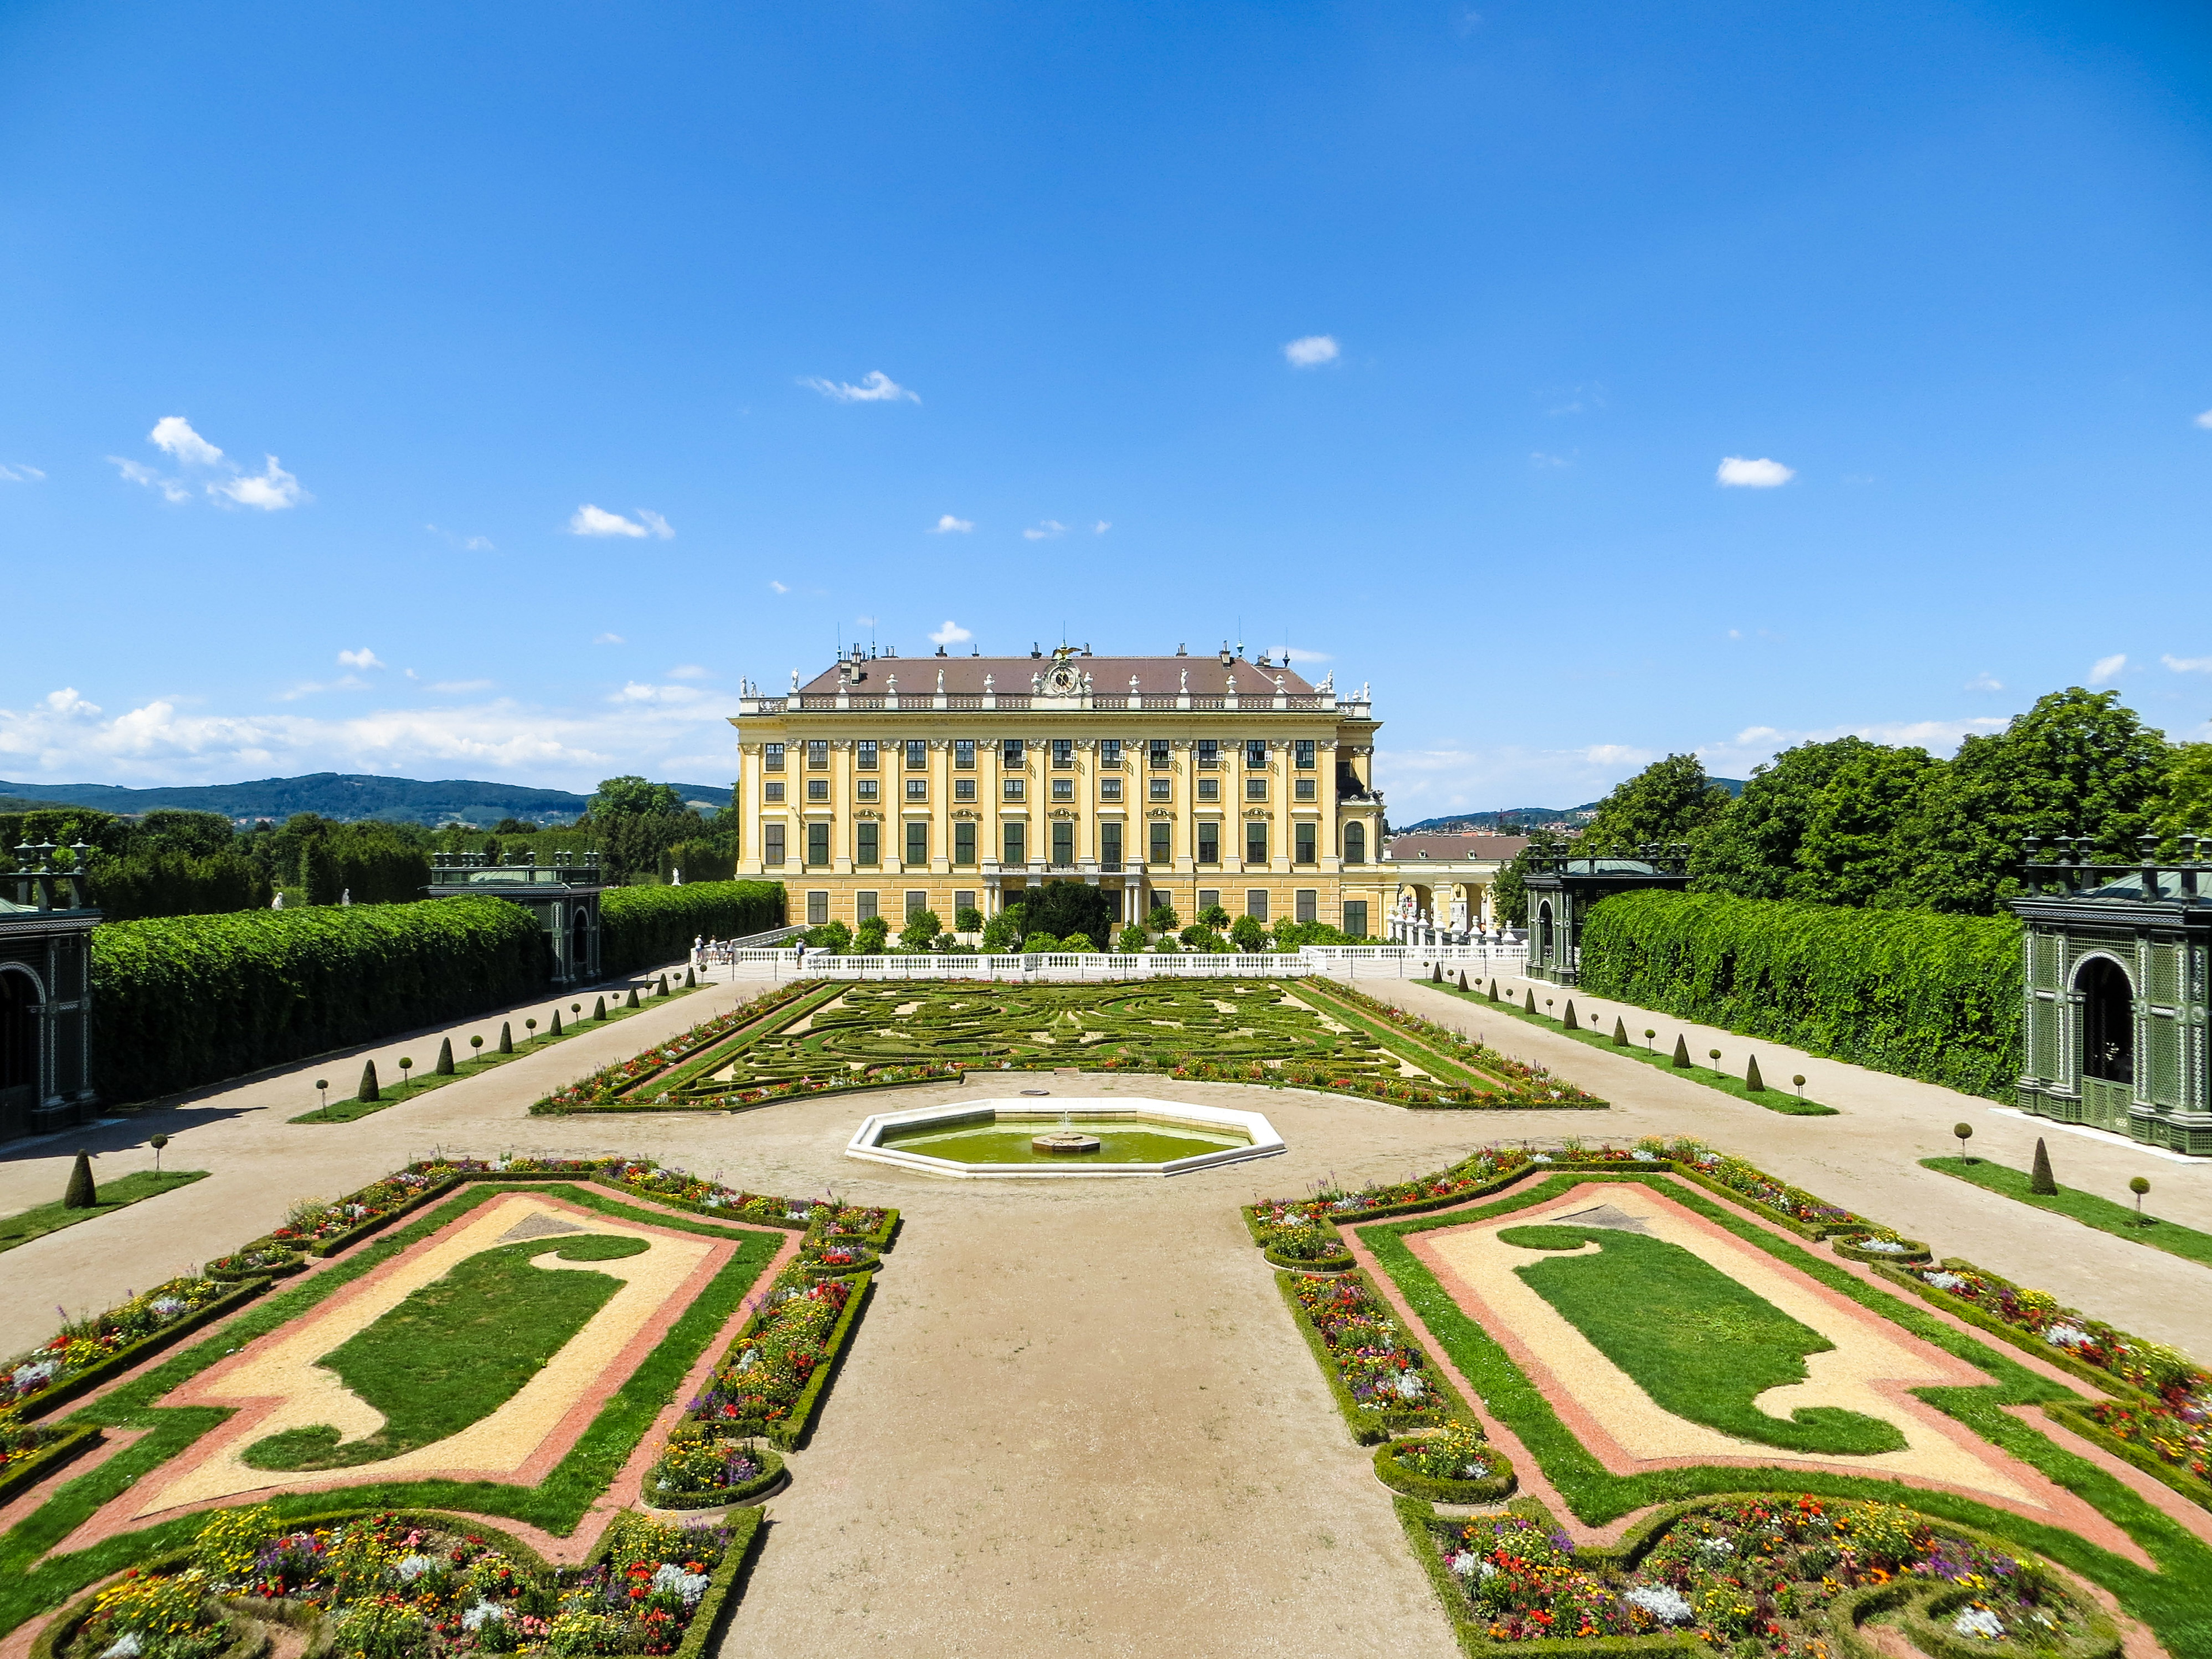 travelling alone in vienna? go to palaces